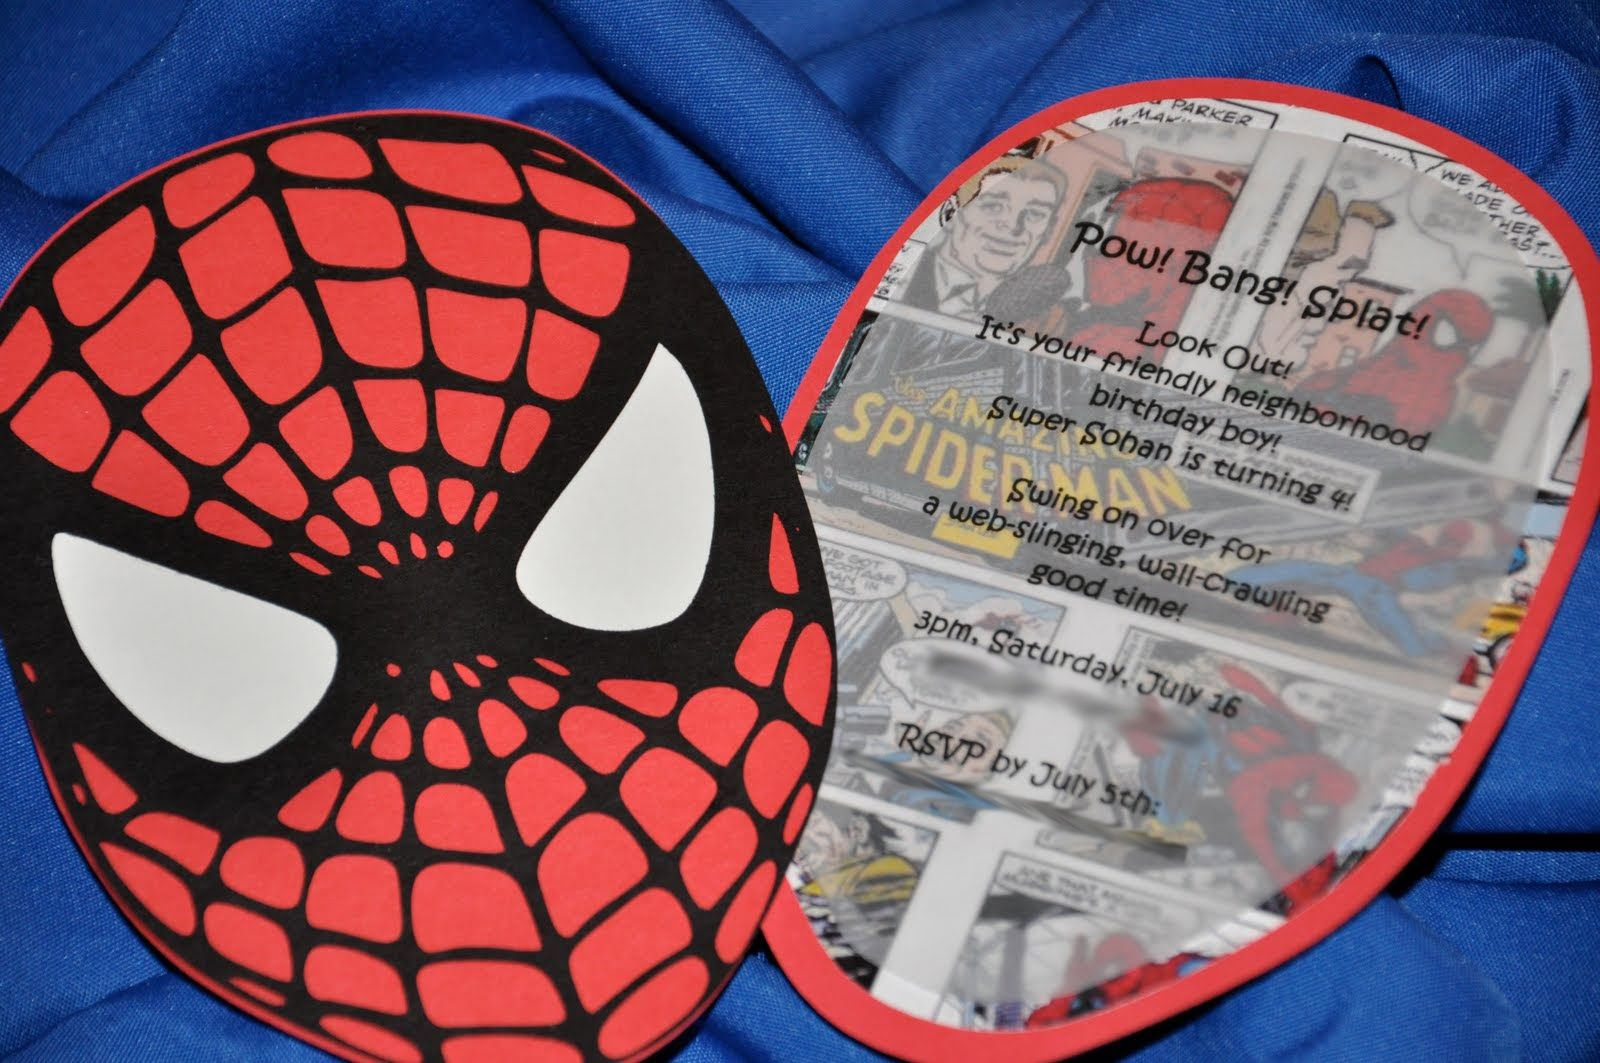 Spiderman Party Ideas Spiderman Birthday Party Part 1 2 As